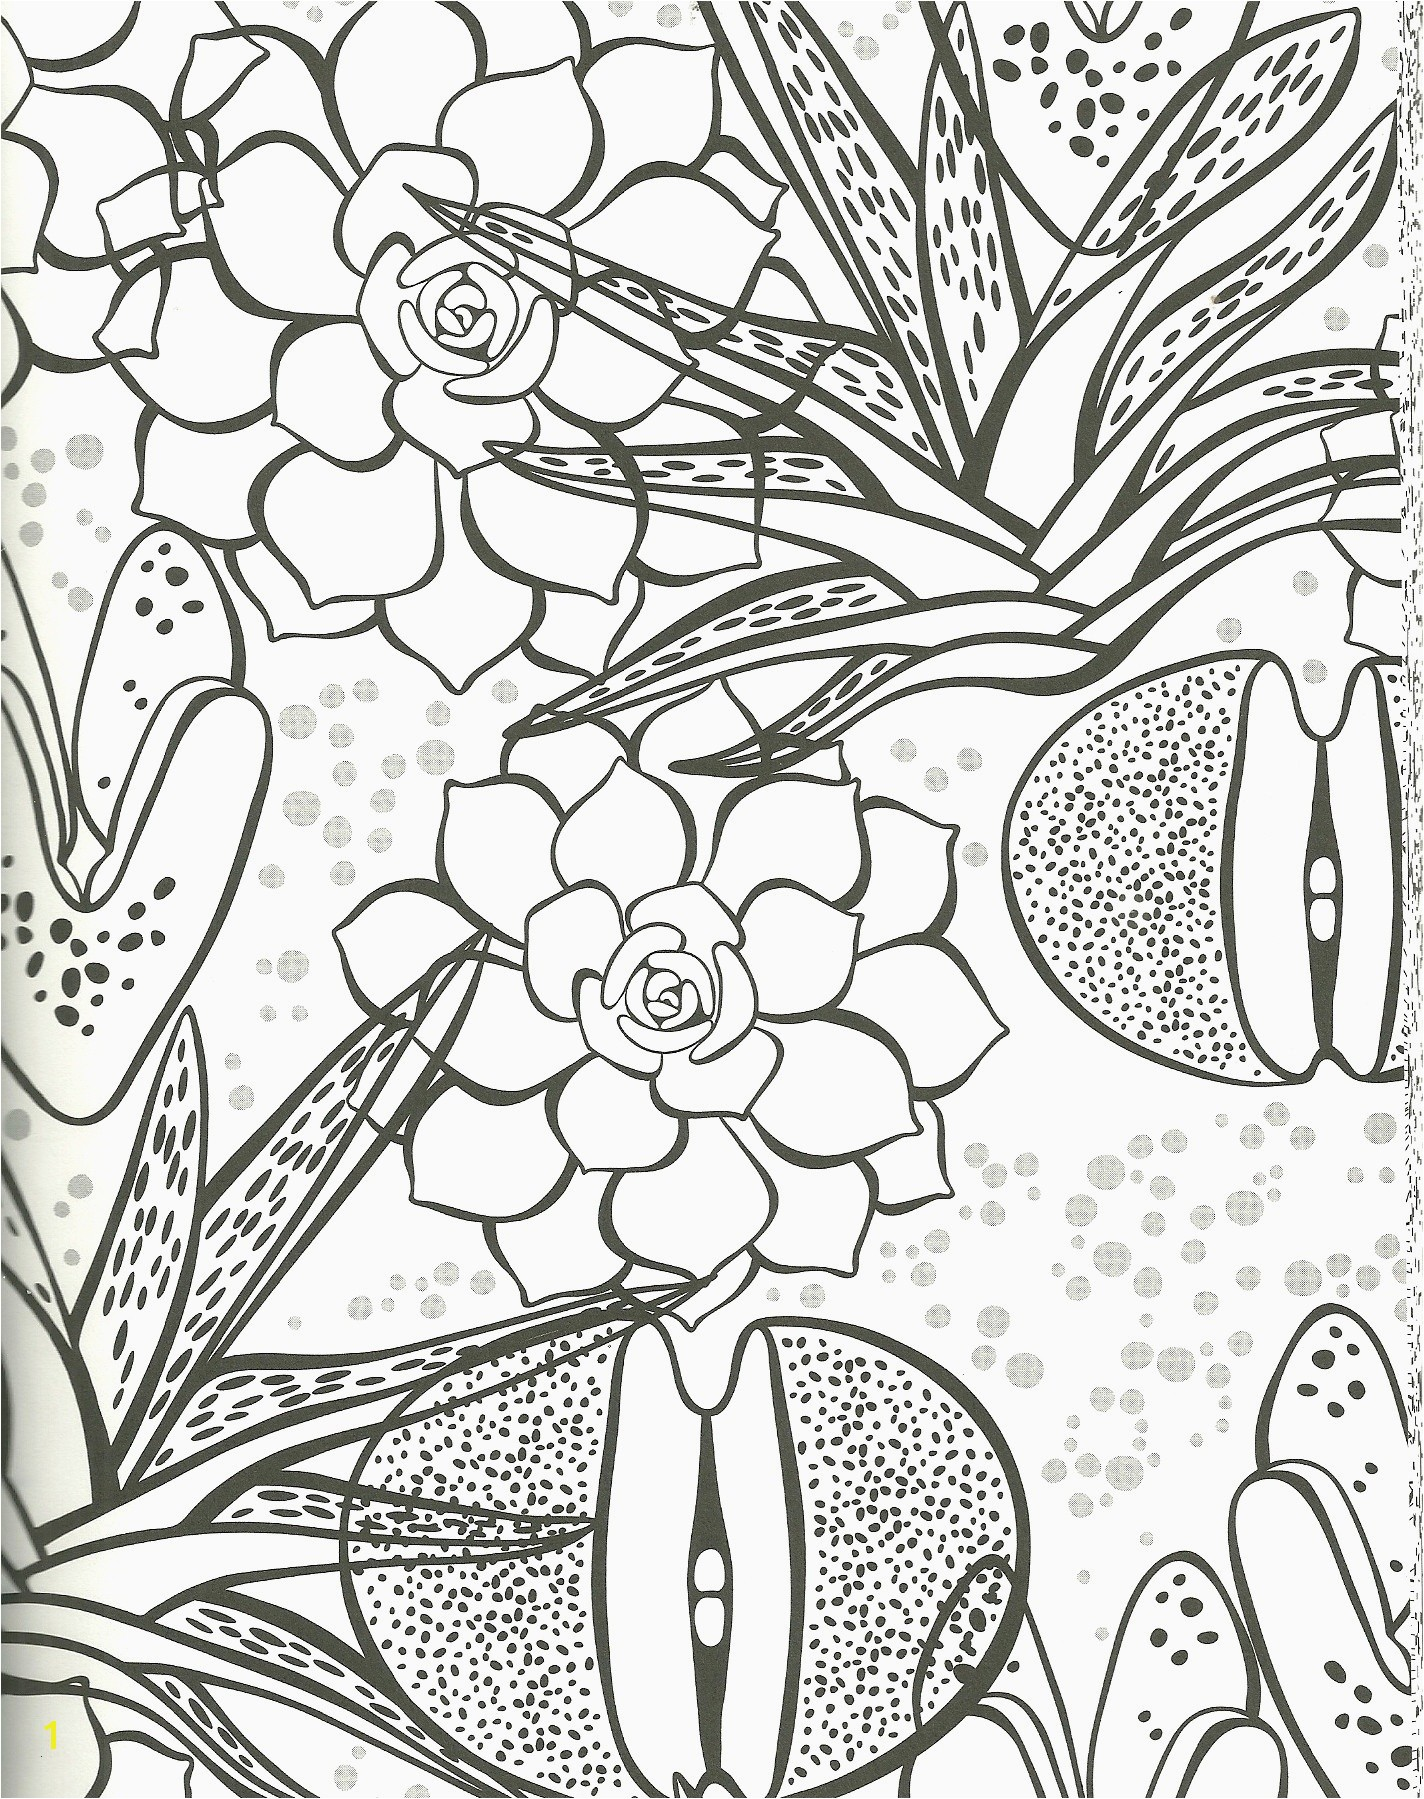 Walking Dead Coloring Page New the Kids Pages Luxury Free Coloring Pages Elegant Crayola Pages 0d